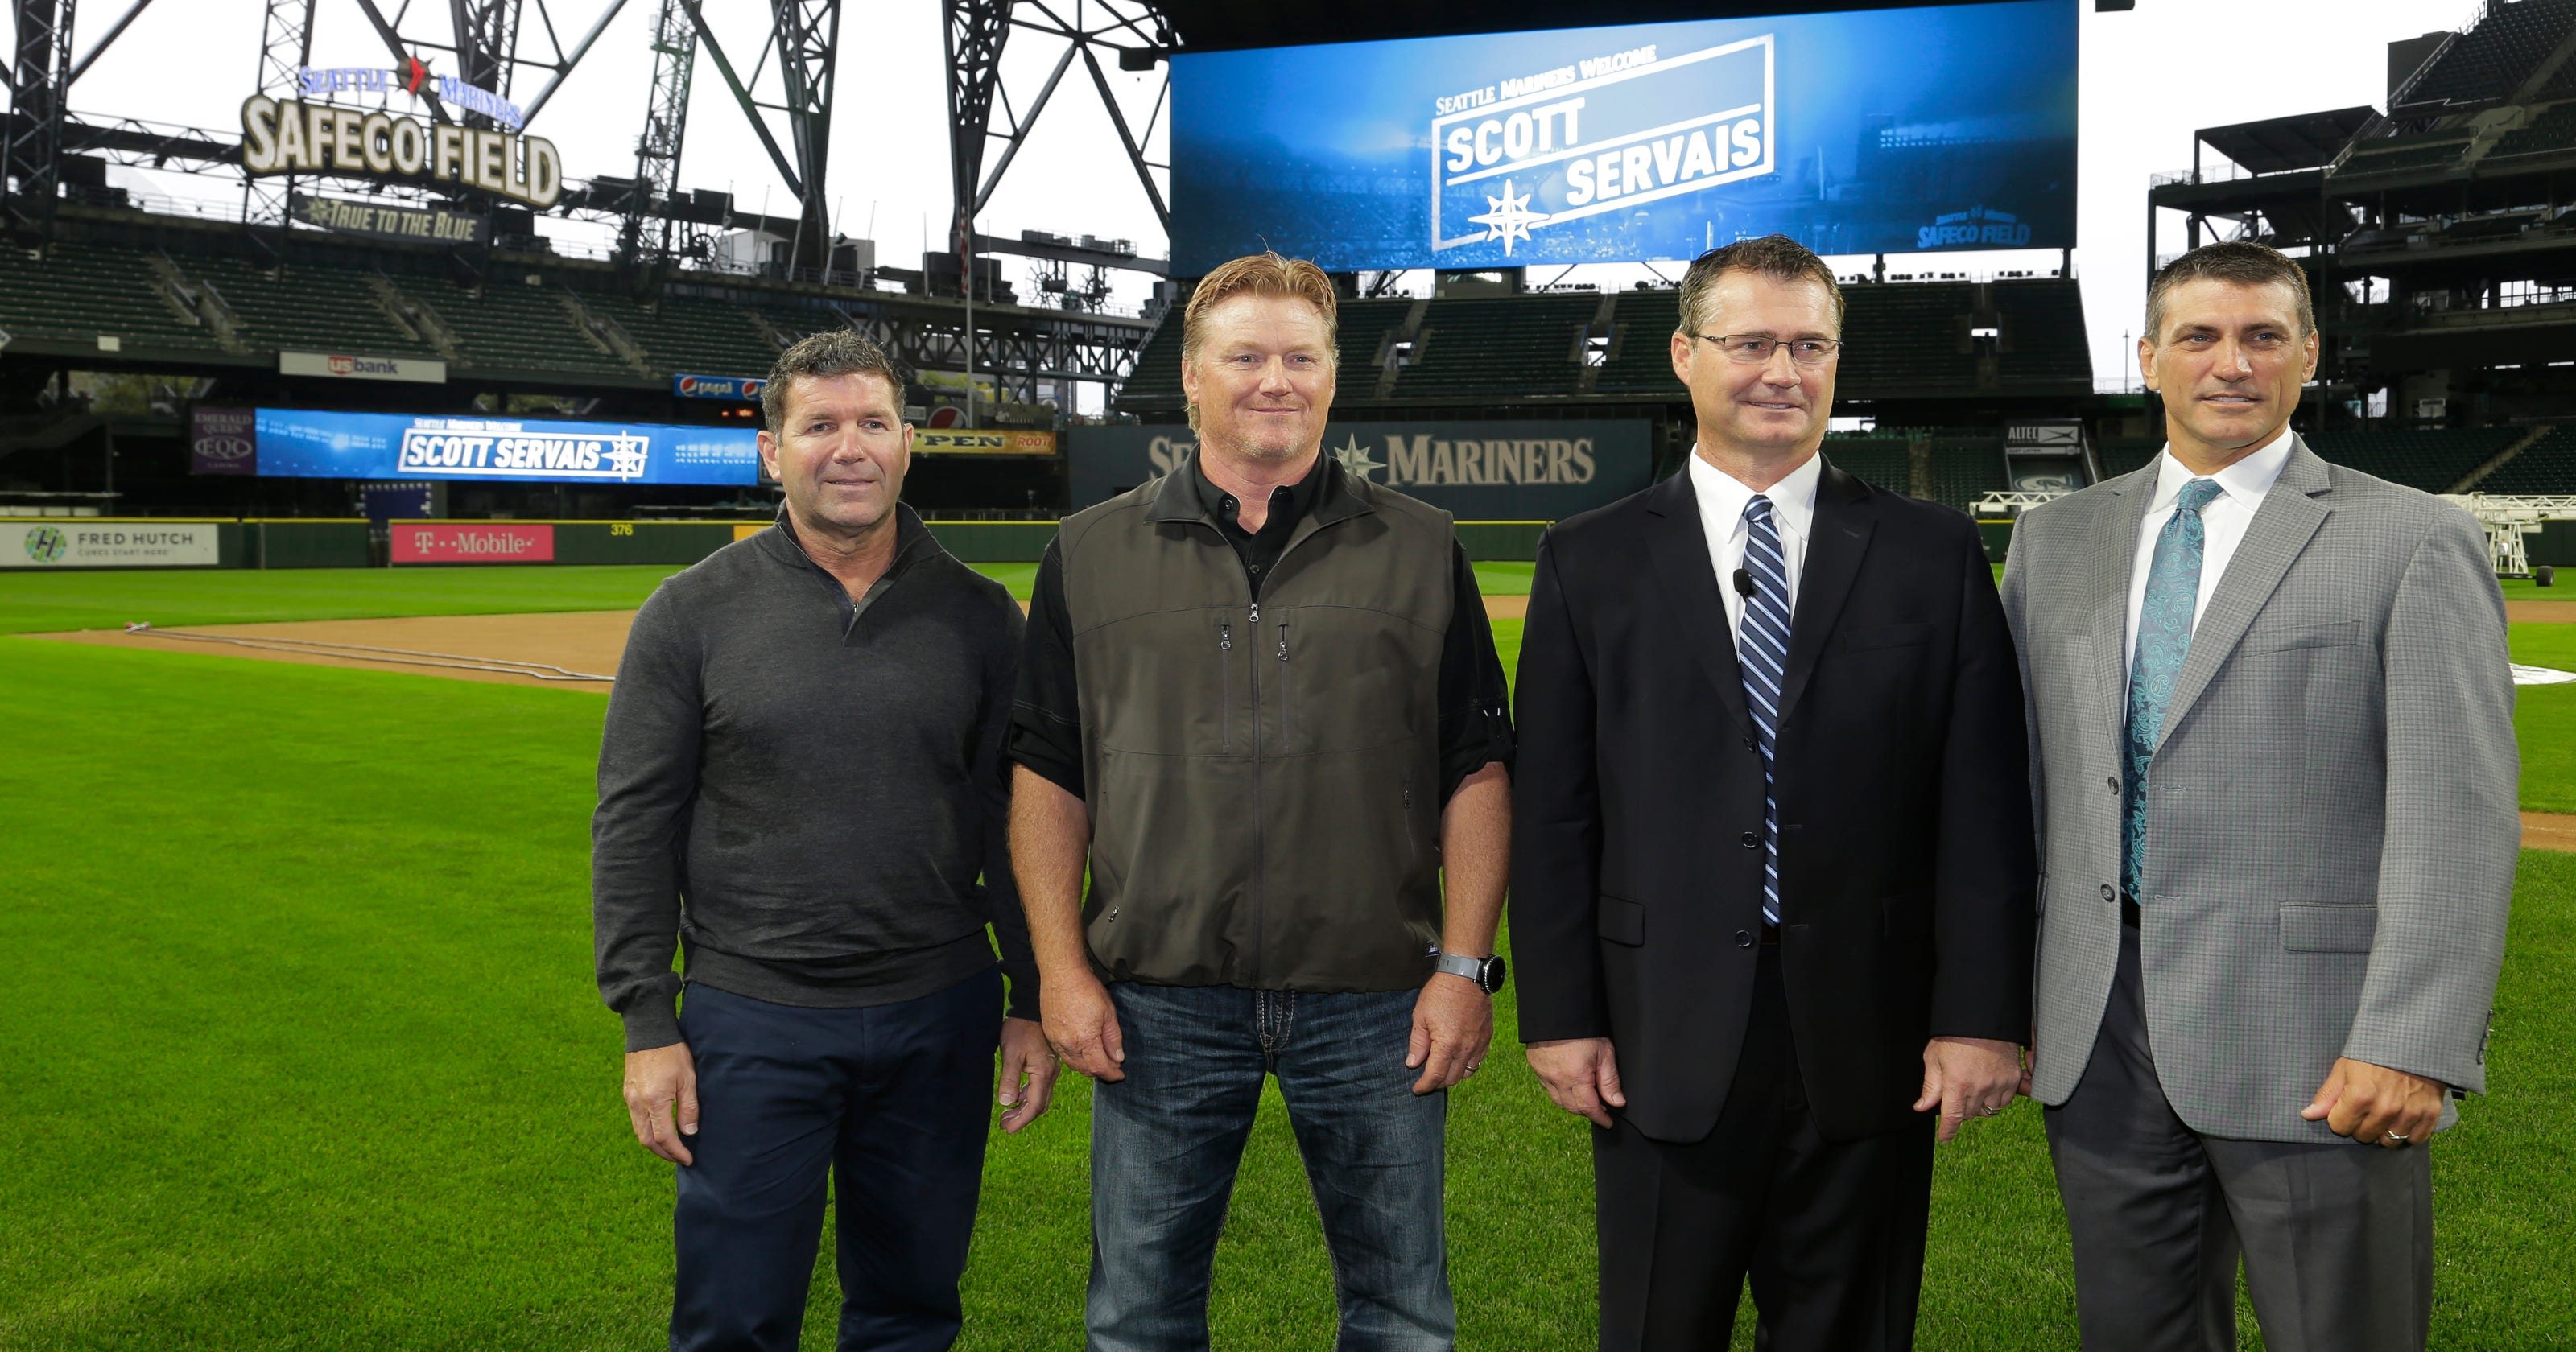 6f845dab9d9 Scott Servais looks to bring winning culture to Mariners